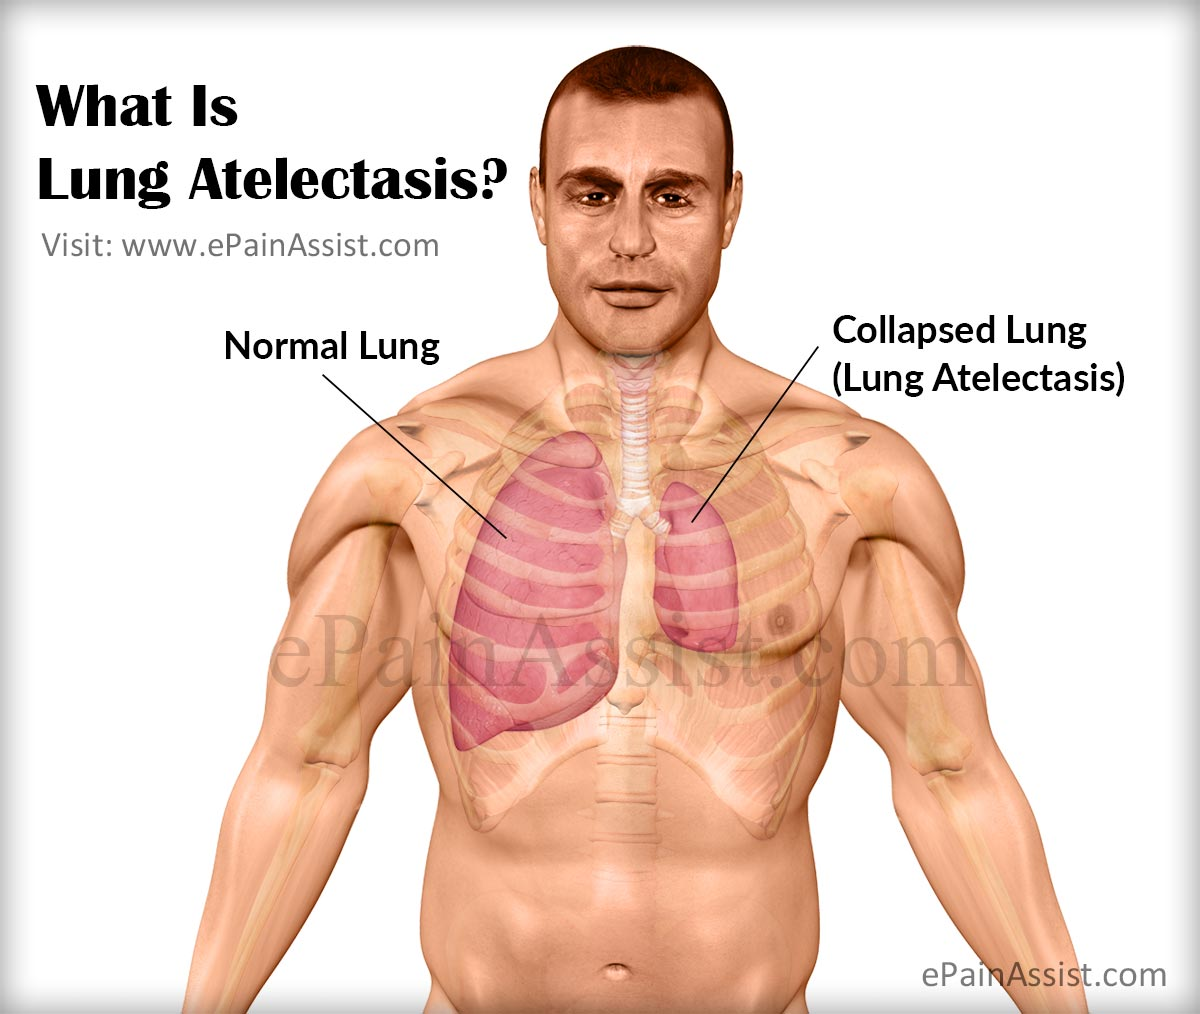 what is lung atelectasis & what is its pathophysiology?, Cephalic Vein